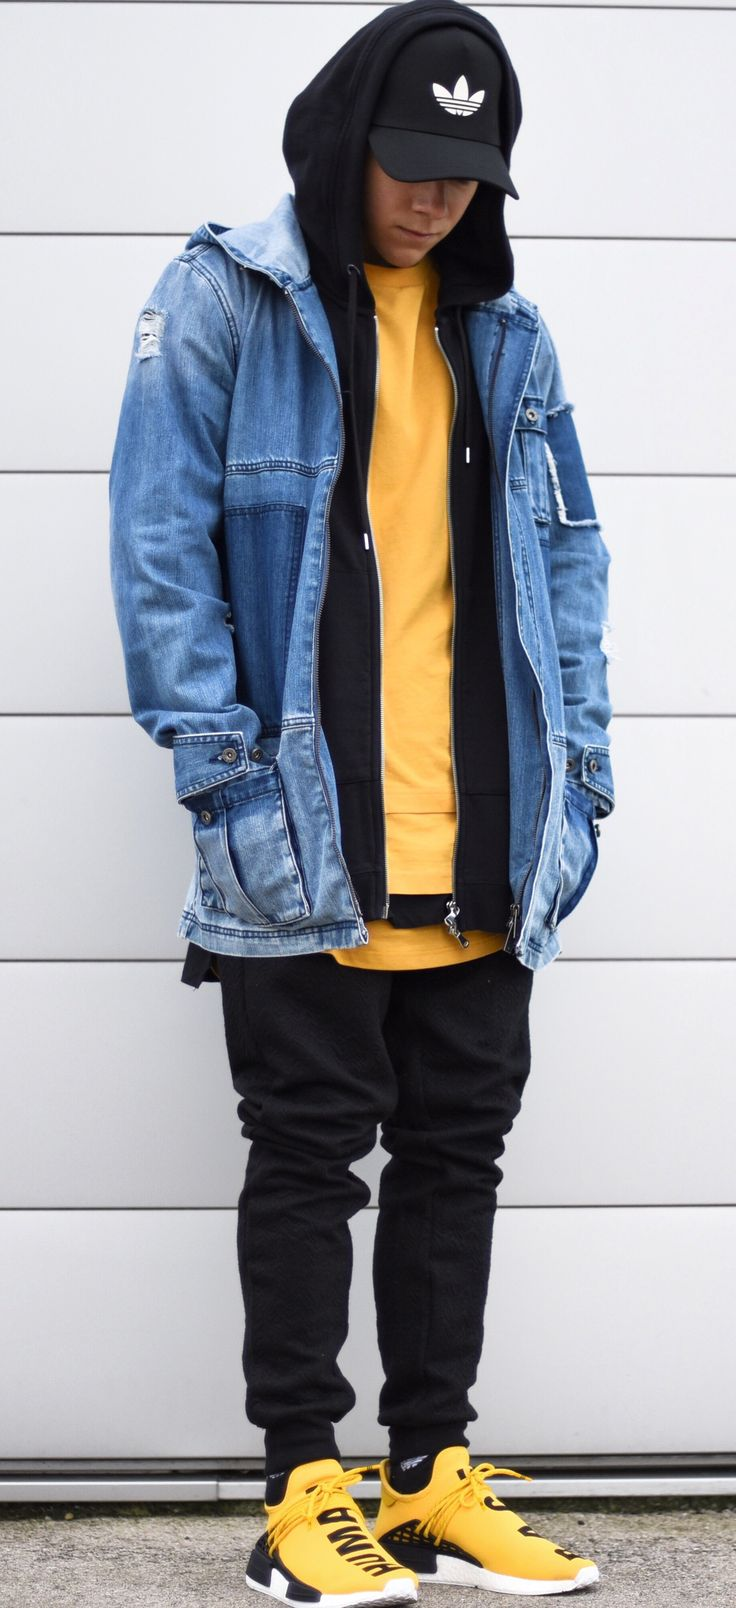 today im wearing a yellow short tshirt by @puma, middle length by @asos, extra long by @topman, black hoodie by @weekday_stores x @champion, denim jacket/pants by @iloveugly and shoes by @pharrell nmd hu. ----- Follow Me On Instagram As Well https://www.instagram.com/achmedlachned/ ---- #outfit #menswear #nmd #hu #pharrell #yellow #puma #asos #weekday #champion #topman #iloveugly #adidas #shoes #inspiration #ootd #menswear #streetstyle #fashion #austria #fall #winter #denim #jacket…